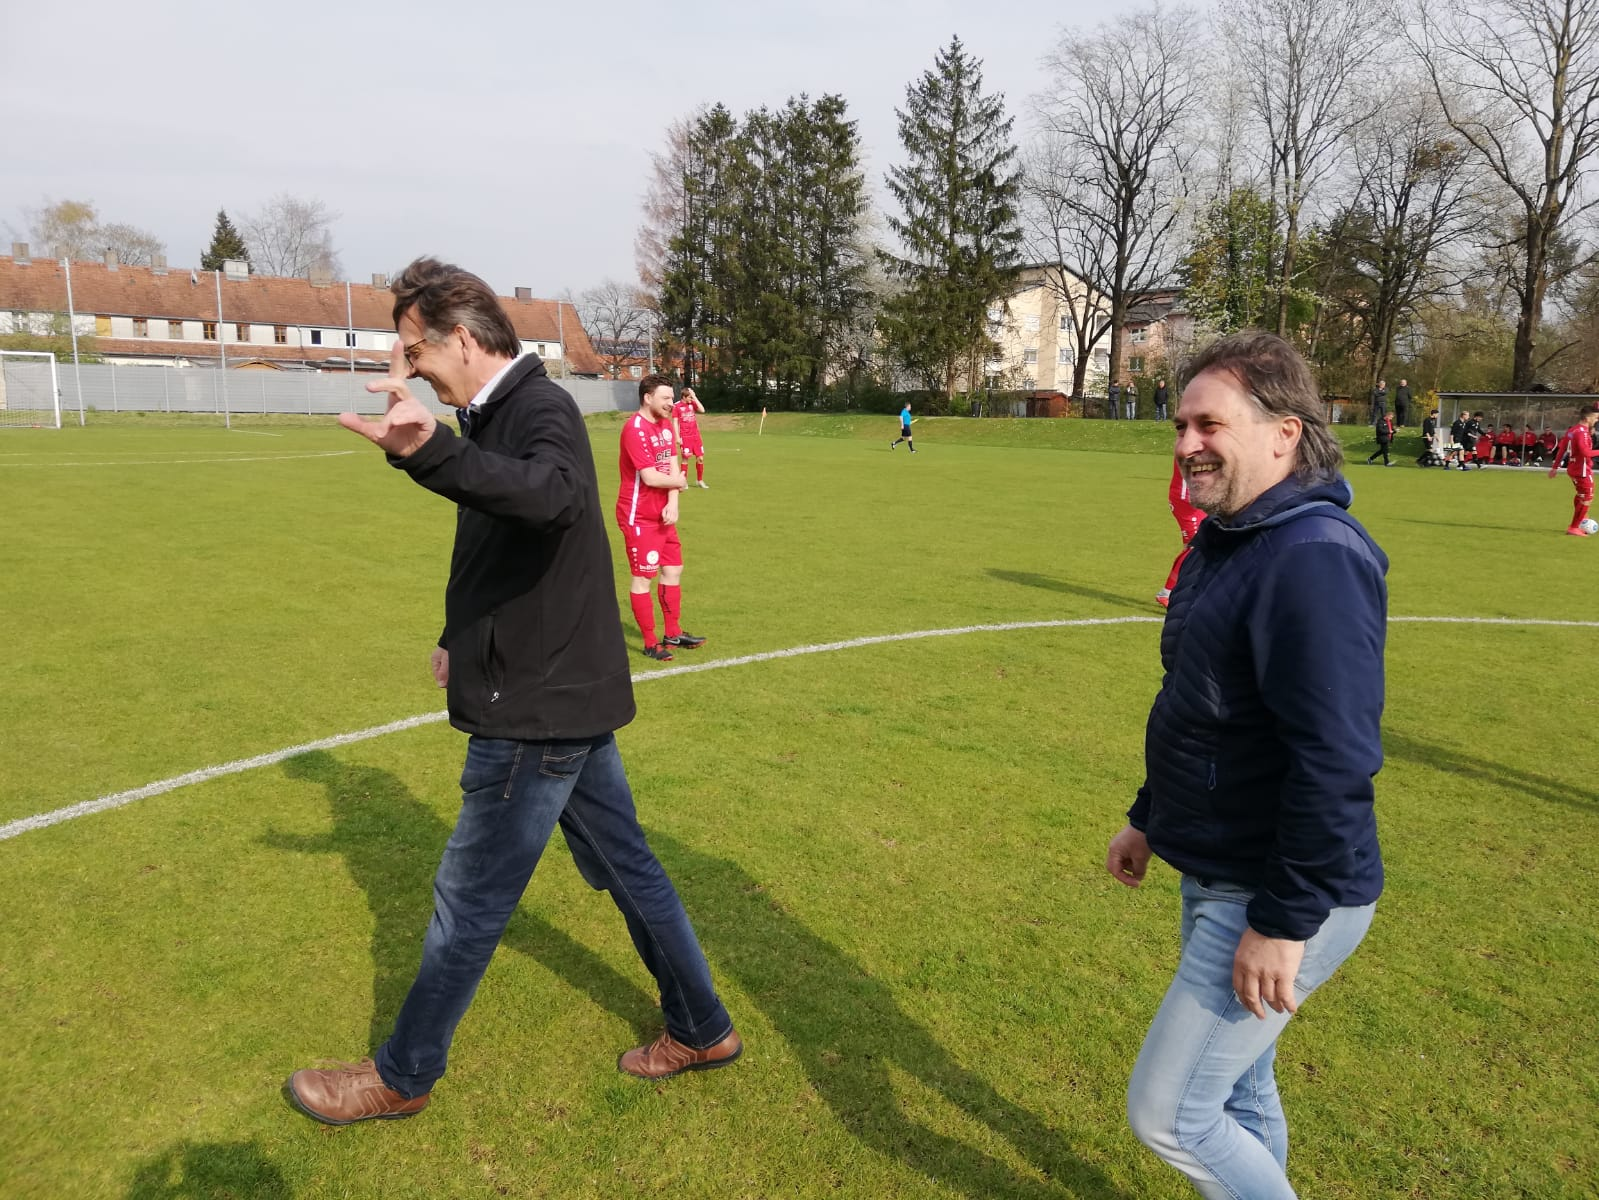 Ehrenanstoss Pillgrab Hans ASK vs Grieskirchen 13 04 2019 (5)